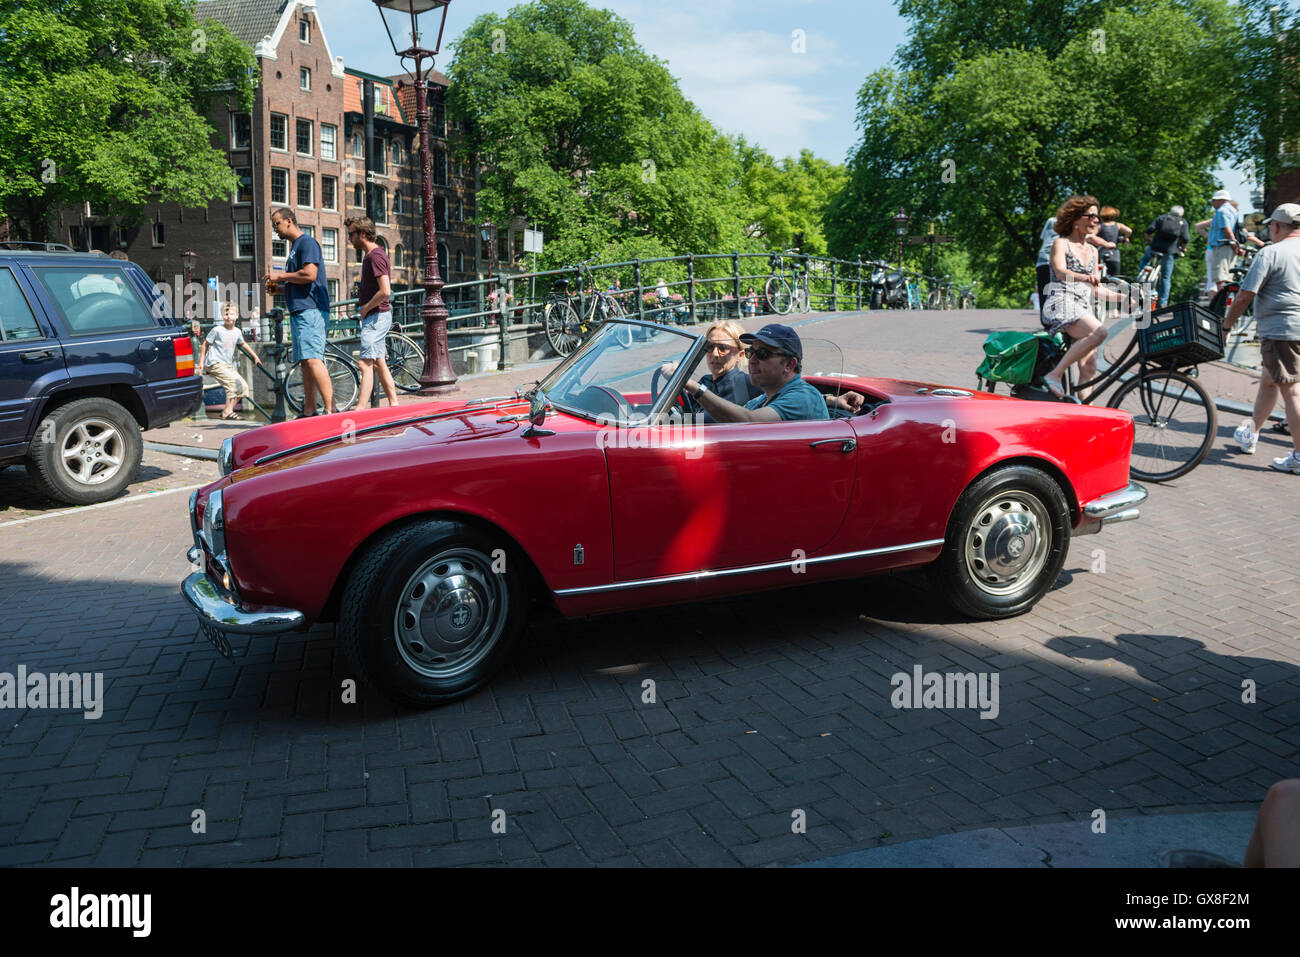 Bridge over the Prinsengracht at the edge of the Jordaan bordering the Brouwersgracht. A very busy crossing. - Stock Image